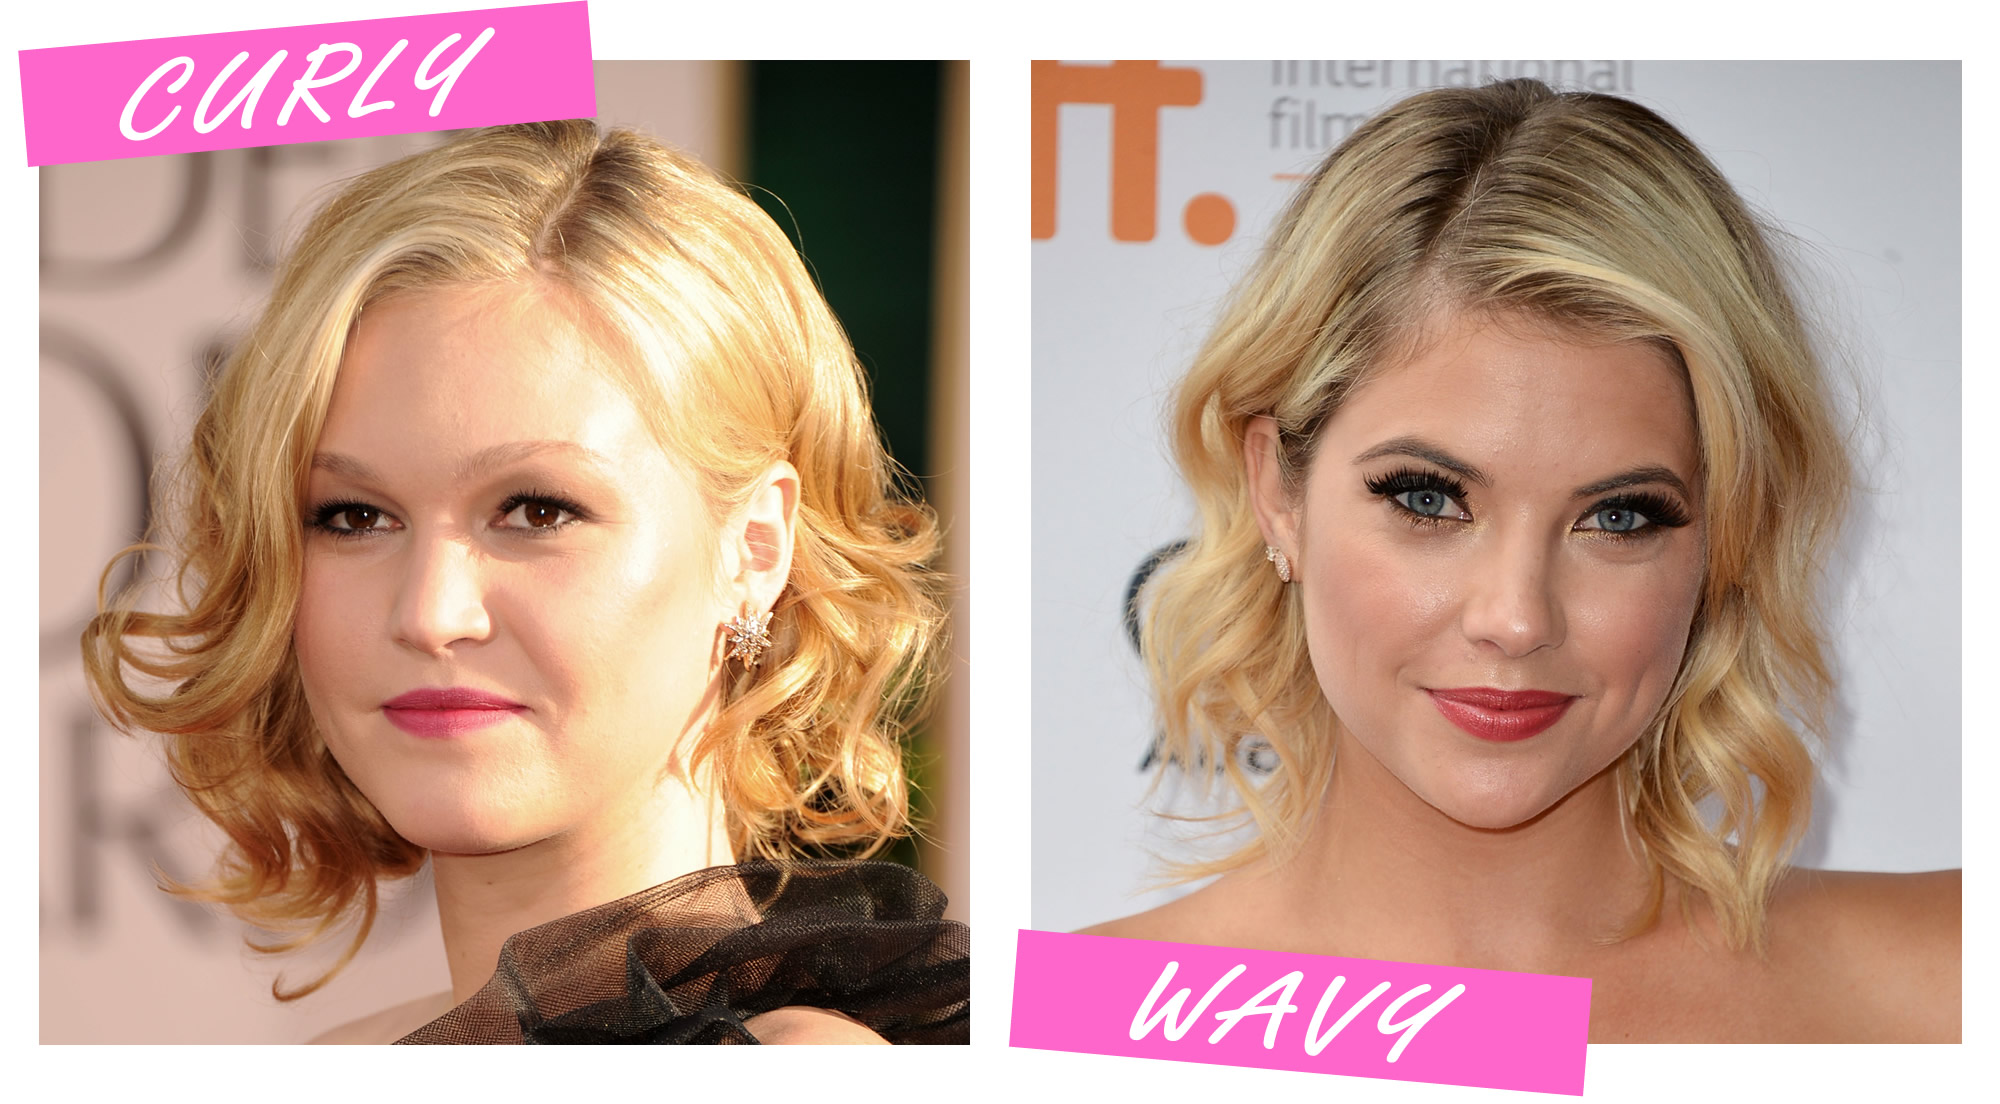 Curling Short Hair with a Curling Iron